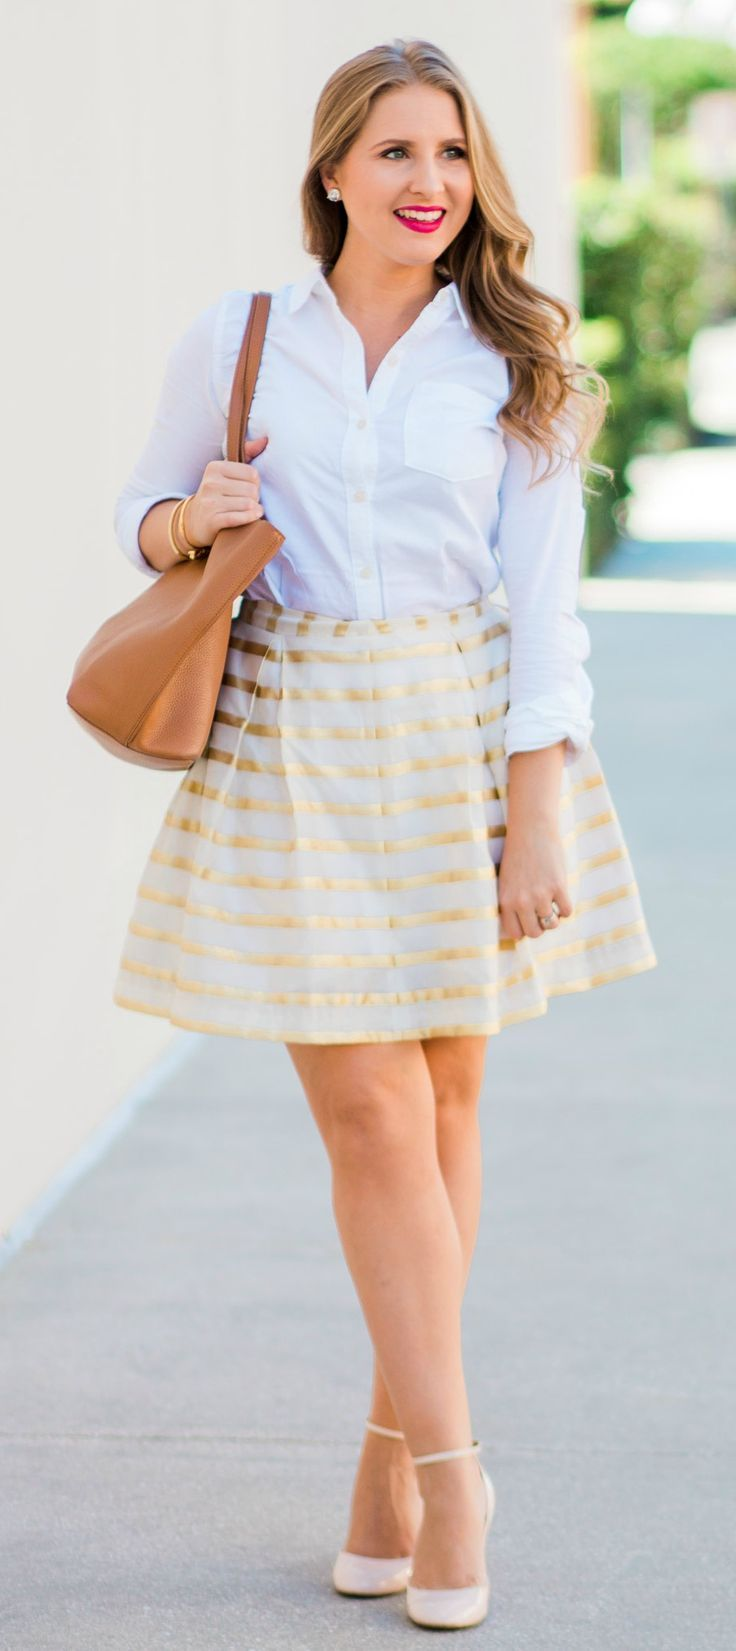 A preppy outfit idea featuring Lilly Pulitzer Kylie skirt in gold and white stripes, Abercrombie classic white button-down Oxford shirt, Charlotte Tilbury The Queen lipstick, Kate Spade clear stud earrings, Tory Burch Perry Tote in cognac, Banana Republic nude pink block heel pumps, Kate Spade pave bow bangle bracelet, and Taudrey engraved gold bracelet styled by fashion blogger Ashley Brooke Nicholas in Orlando, Florida | preppy fashion, prep fashion, prepster, preppy inspiration, buy me…